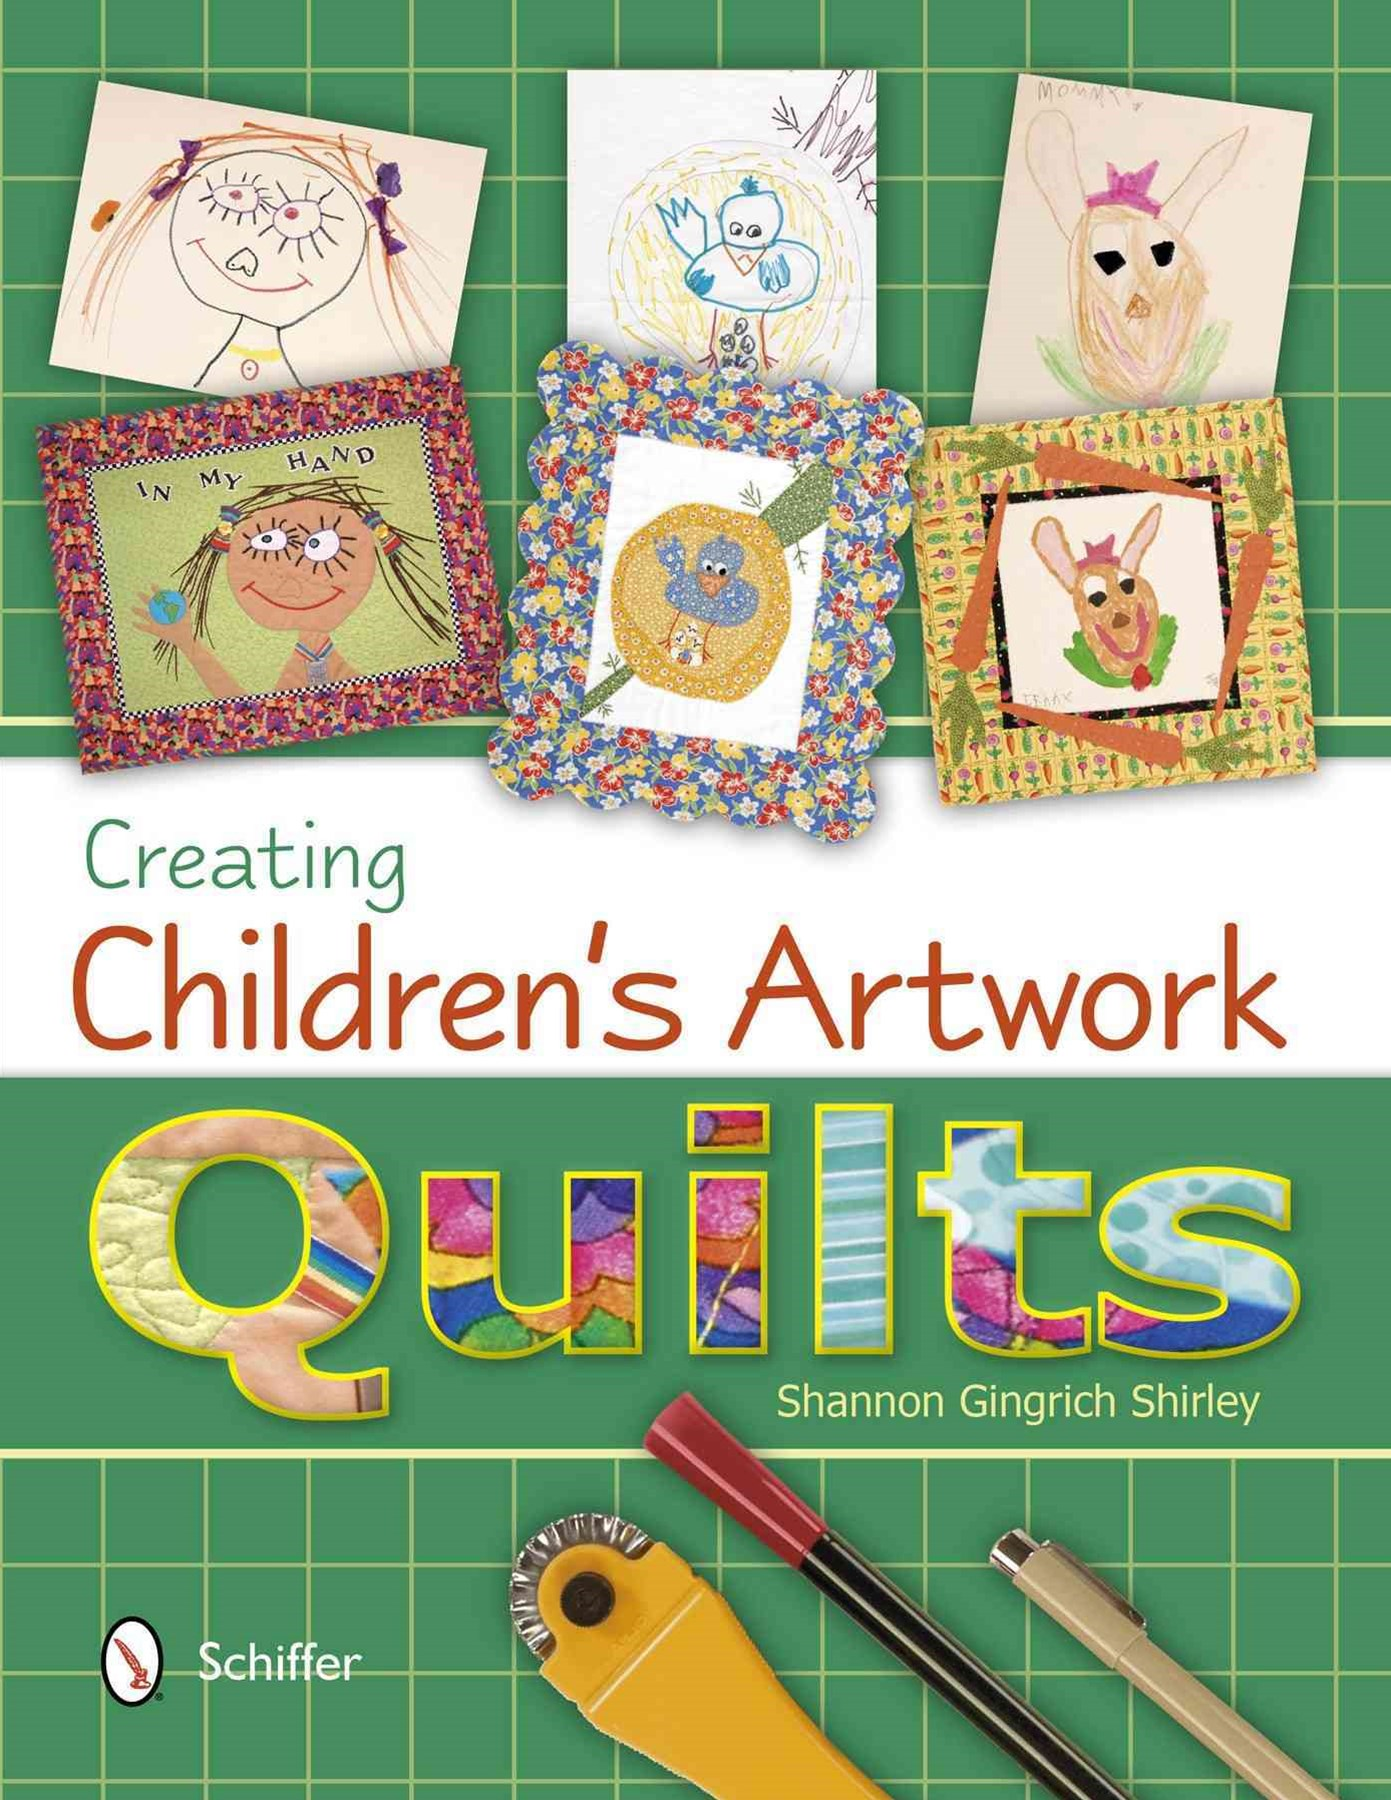 Creating Children's Artwork Quilts